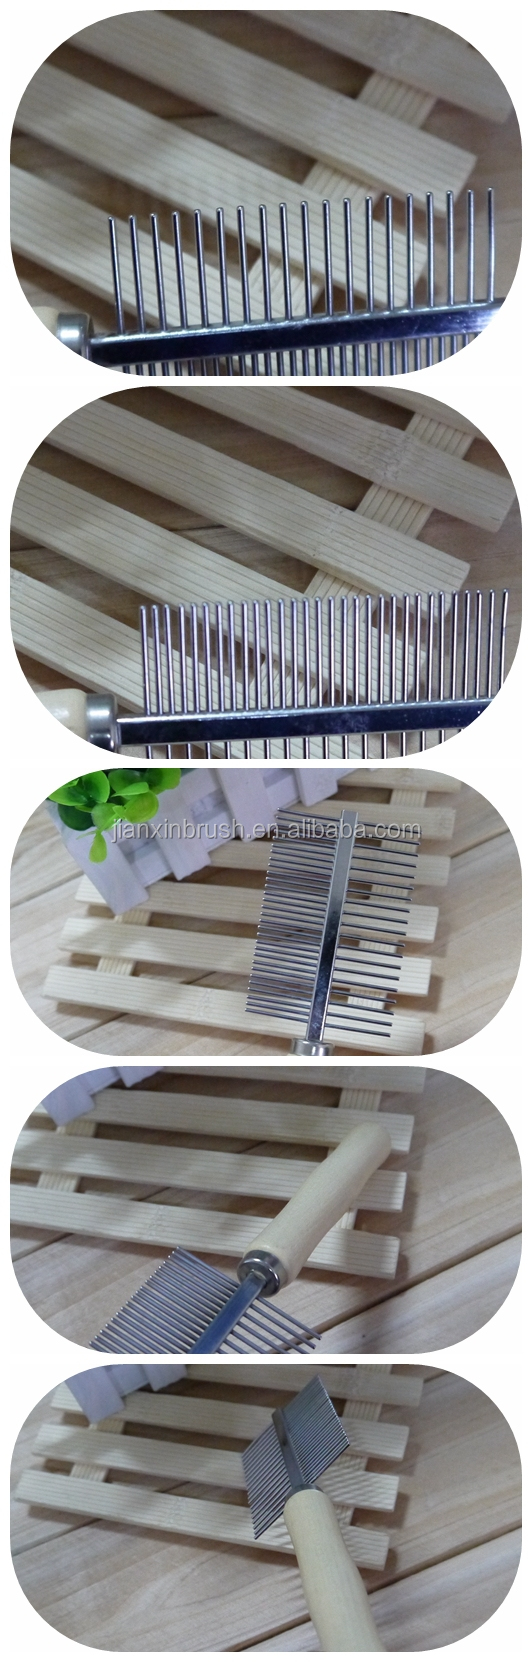 eco cleaning products wooden handle steel teeth comb